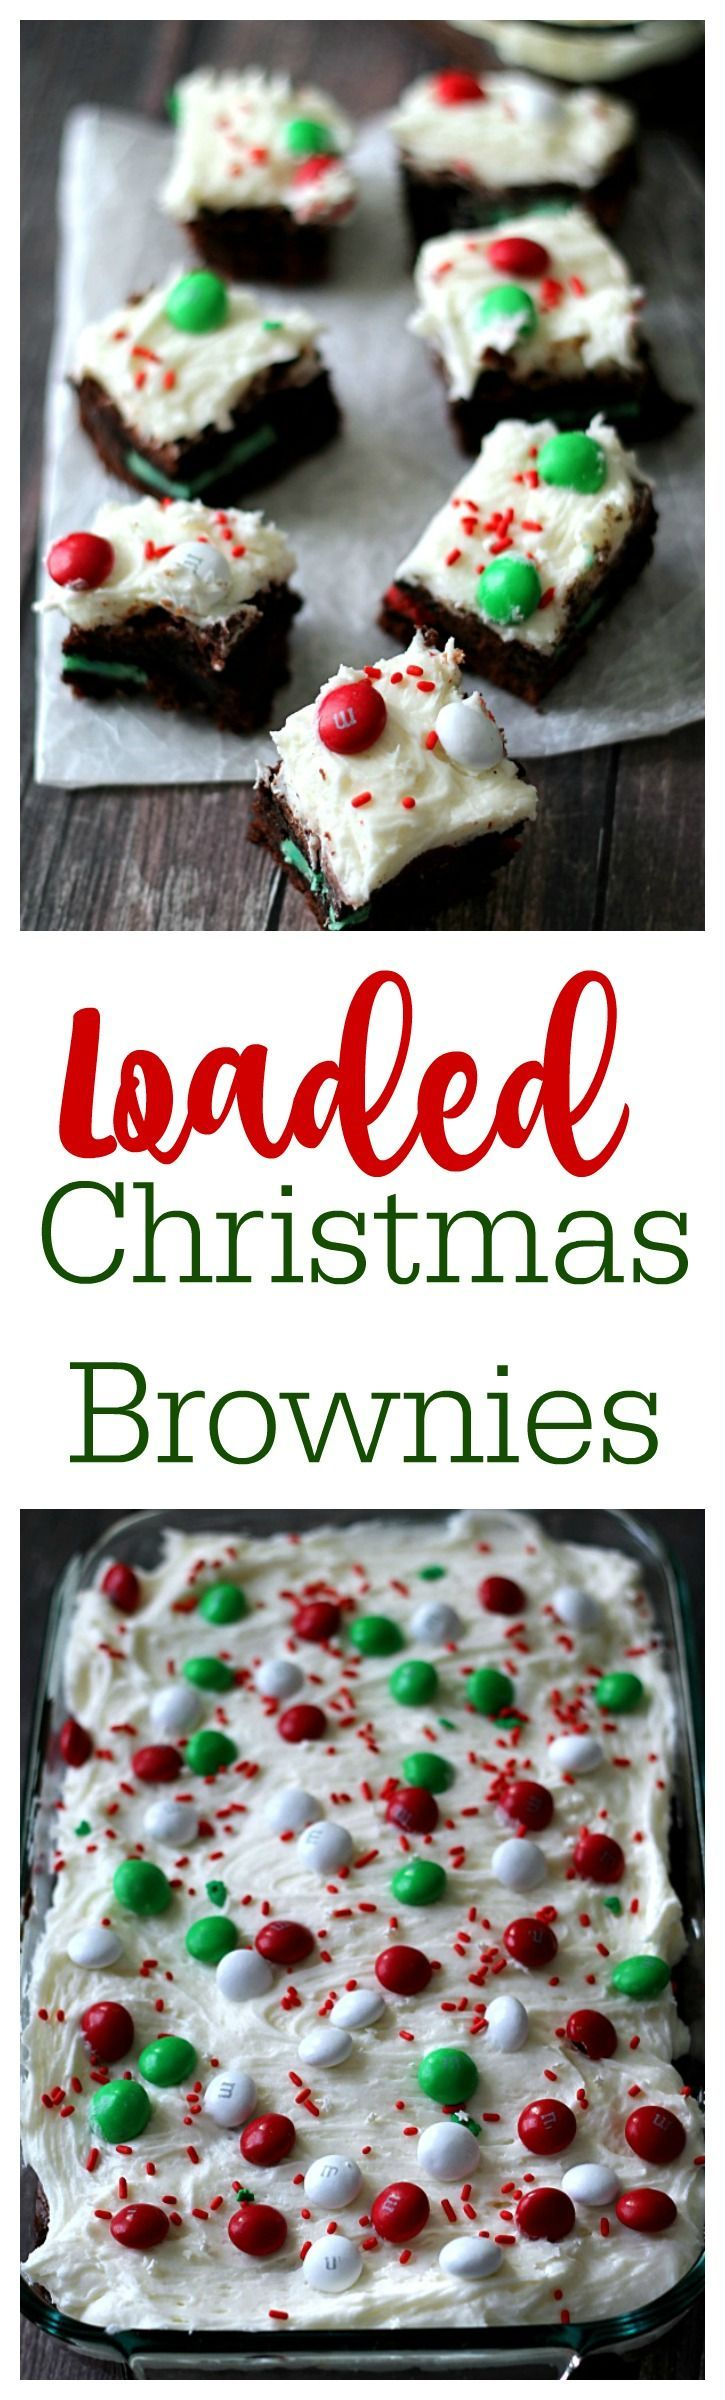 Loaded Christmas Brownies! Brownies stuffed with Oreos and topped with peppermint buttercream, yum!!